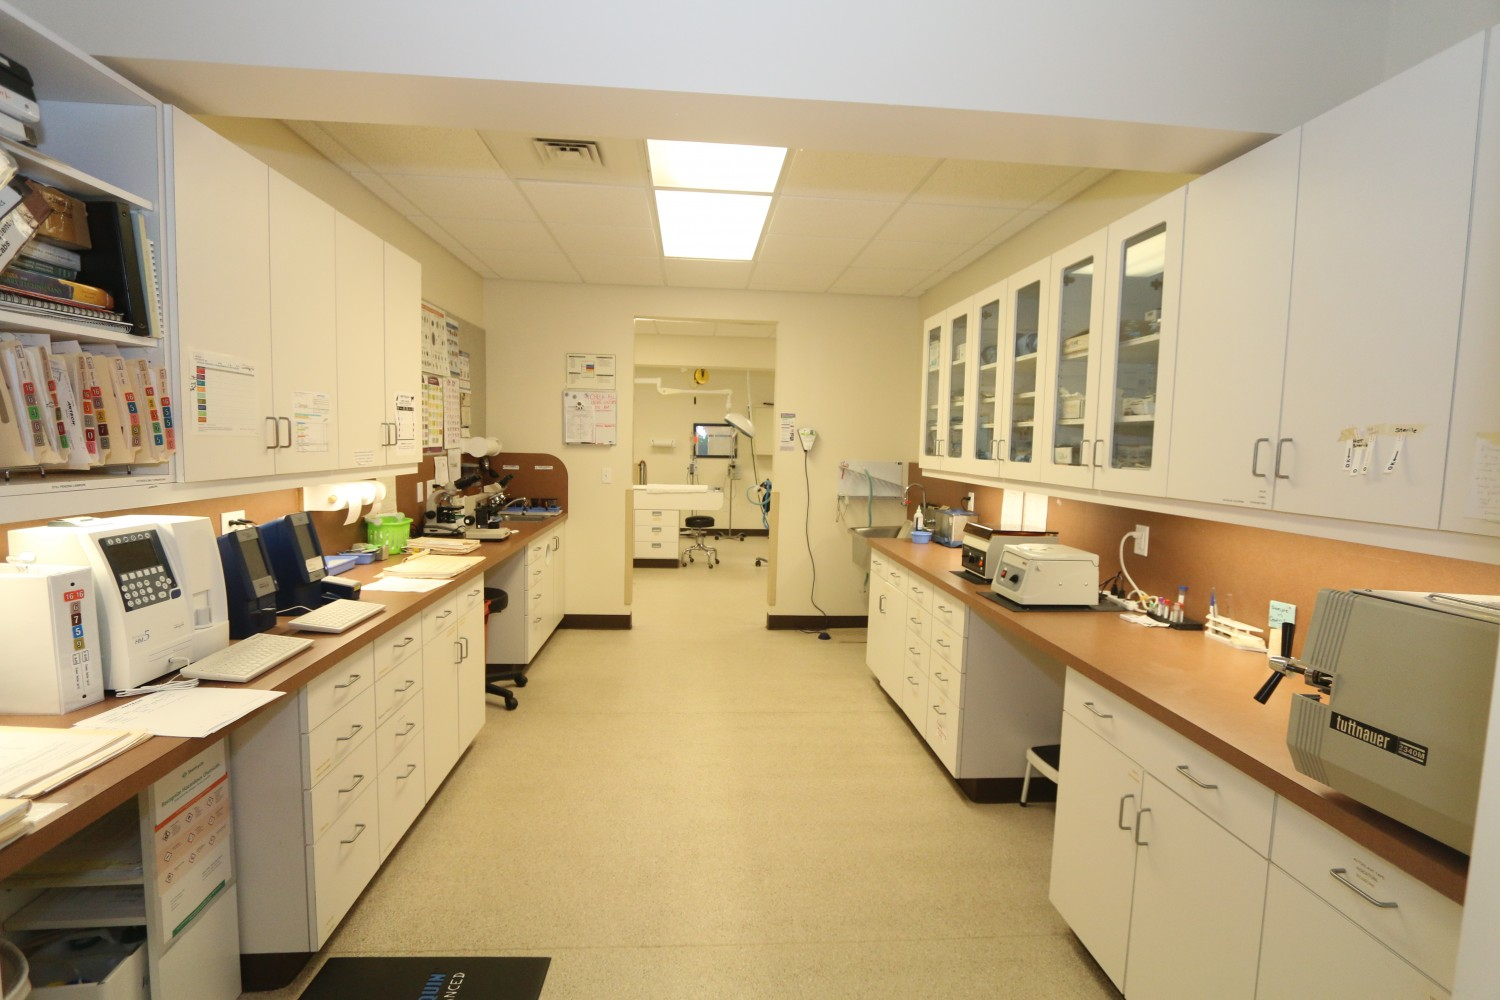 Litchfield Veterinary Hospital - Litchfield, CT - Laboratory